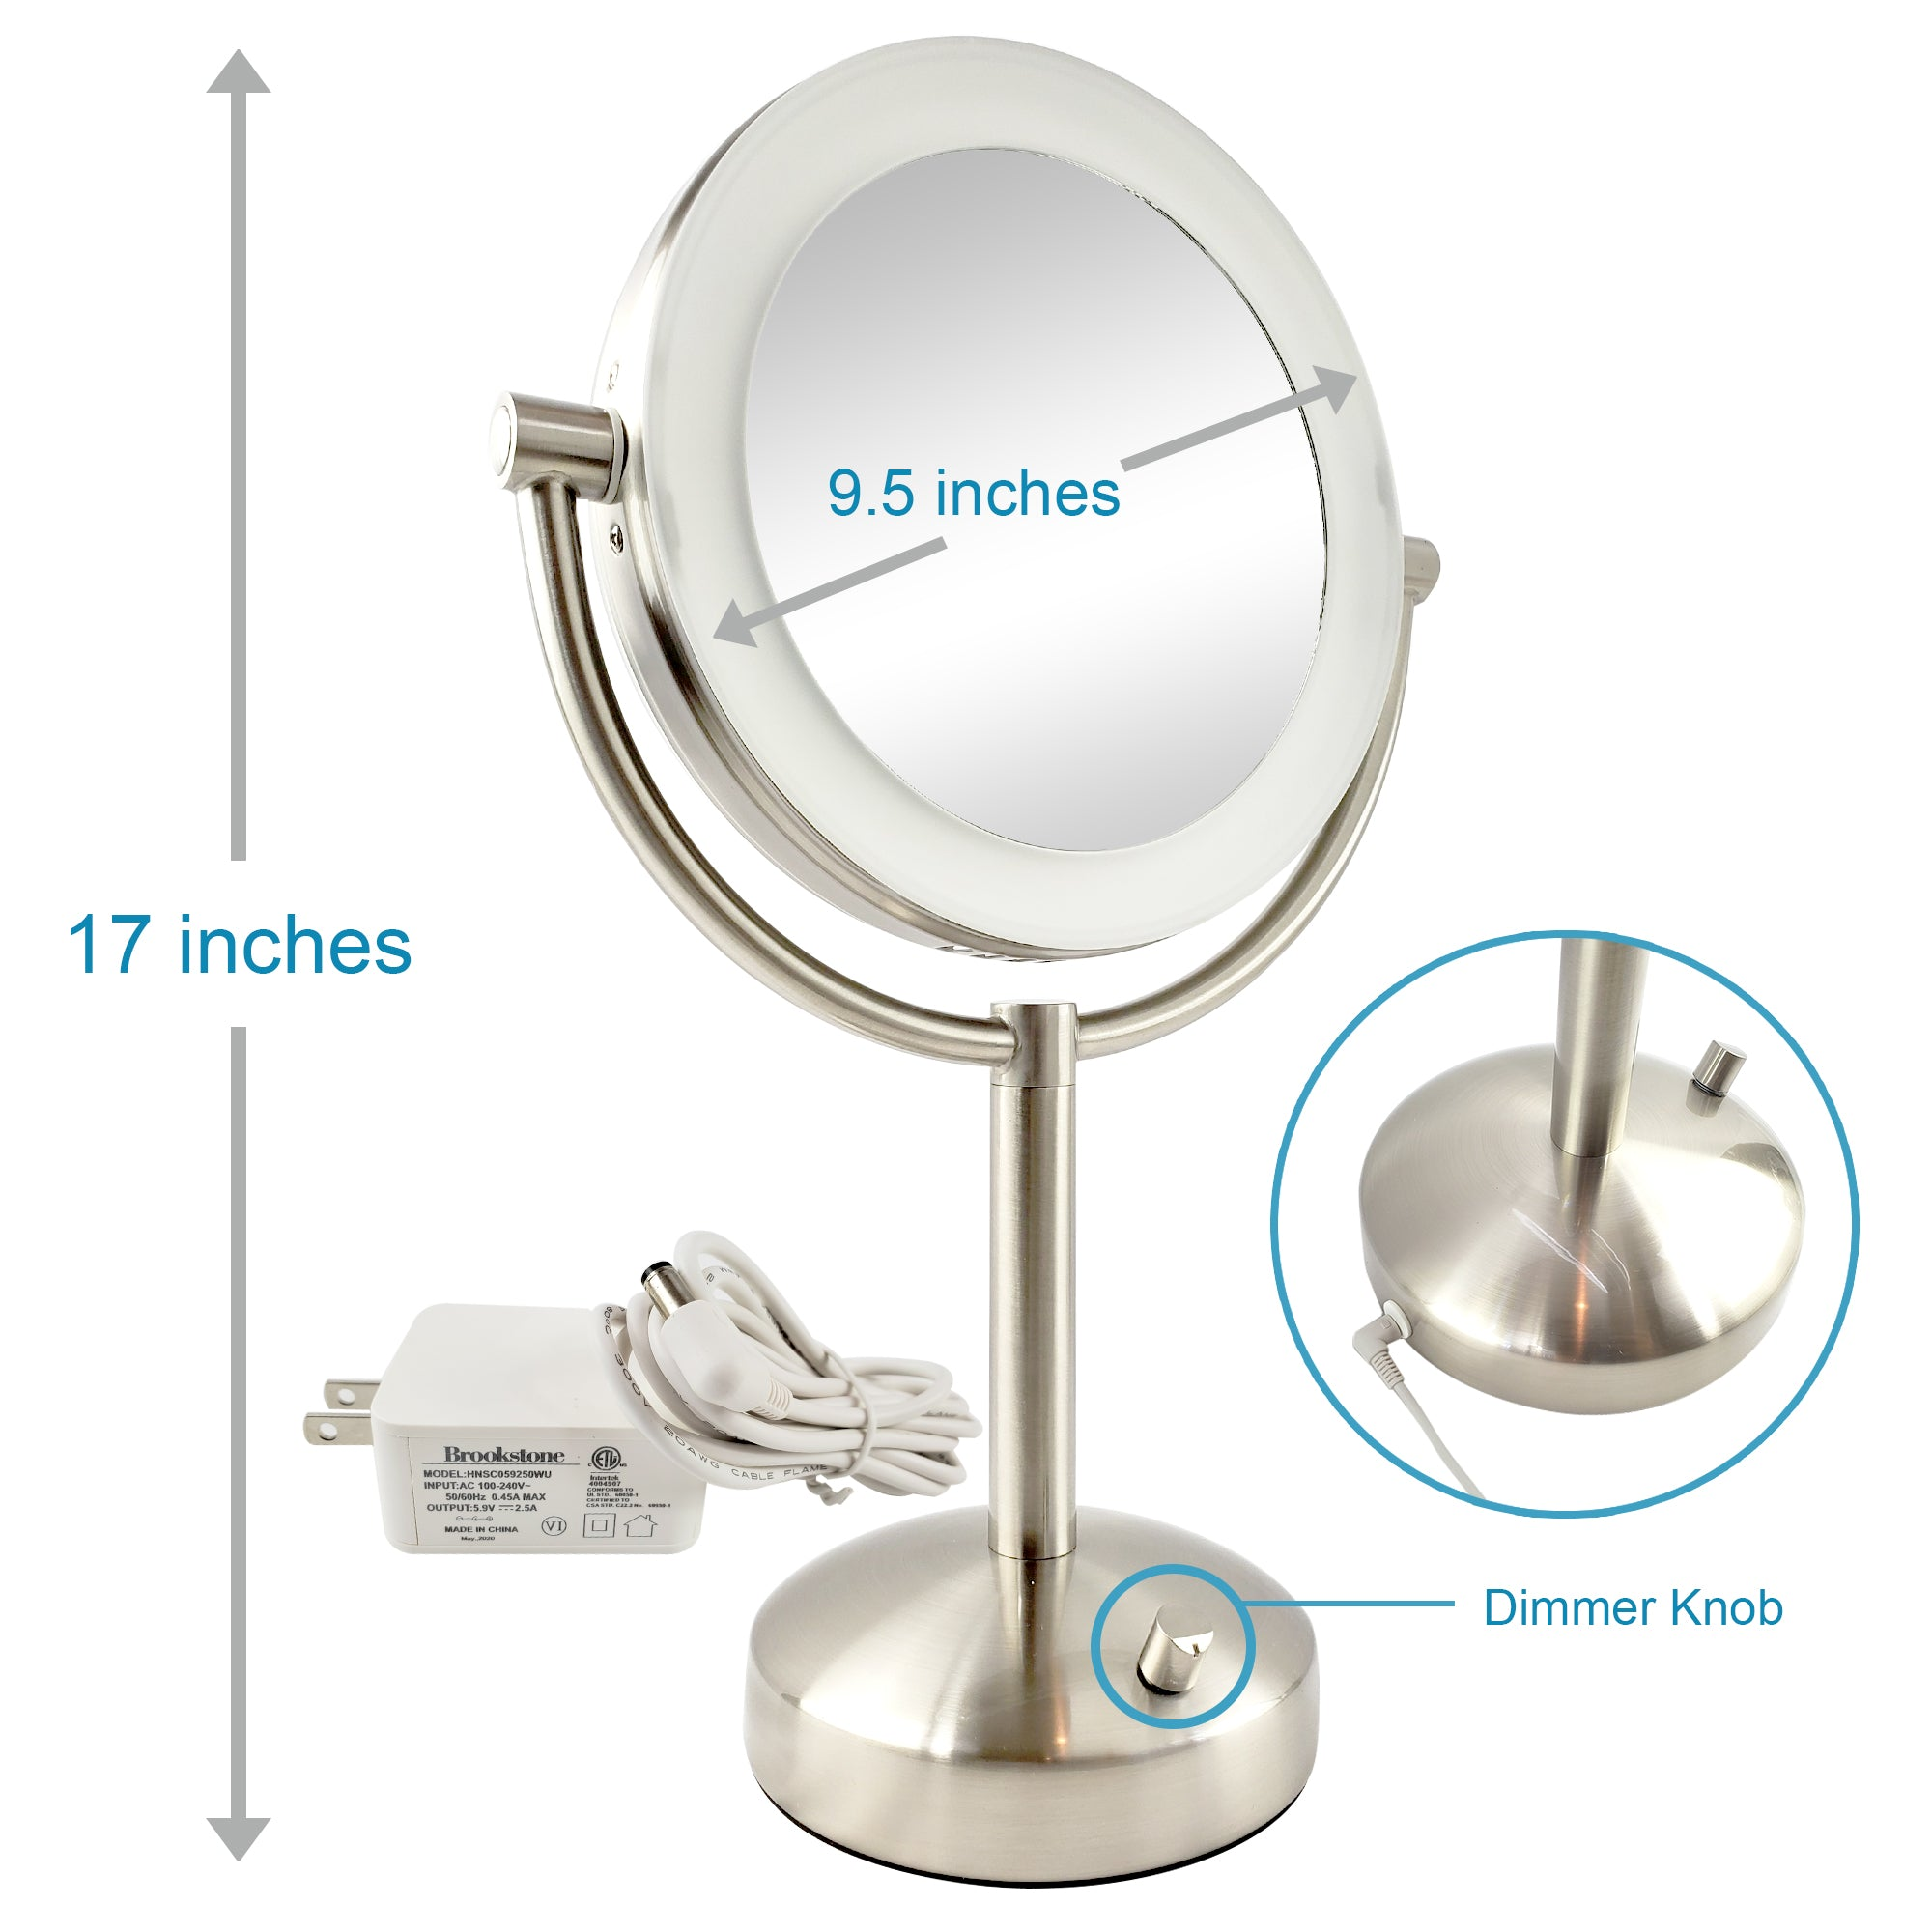 Natural Light Makeup Vanity Mirror, 10x/1x Magnification & Chrome Finish by Brookstone